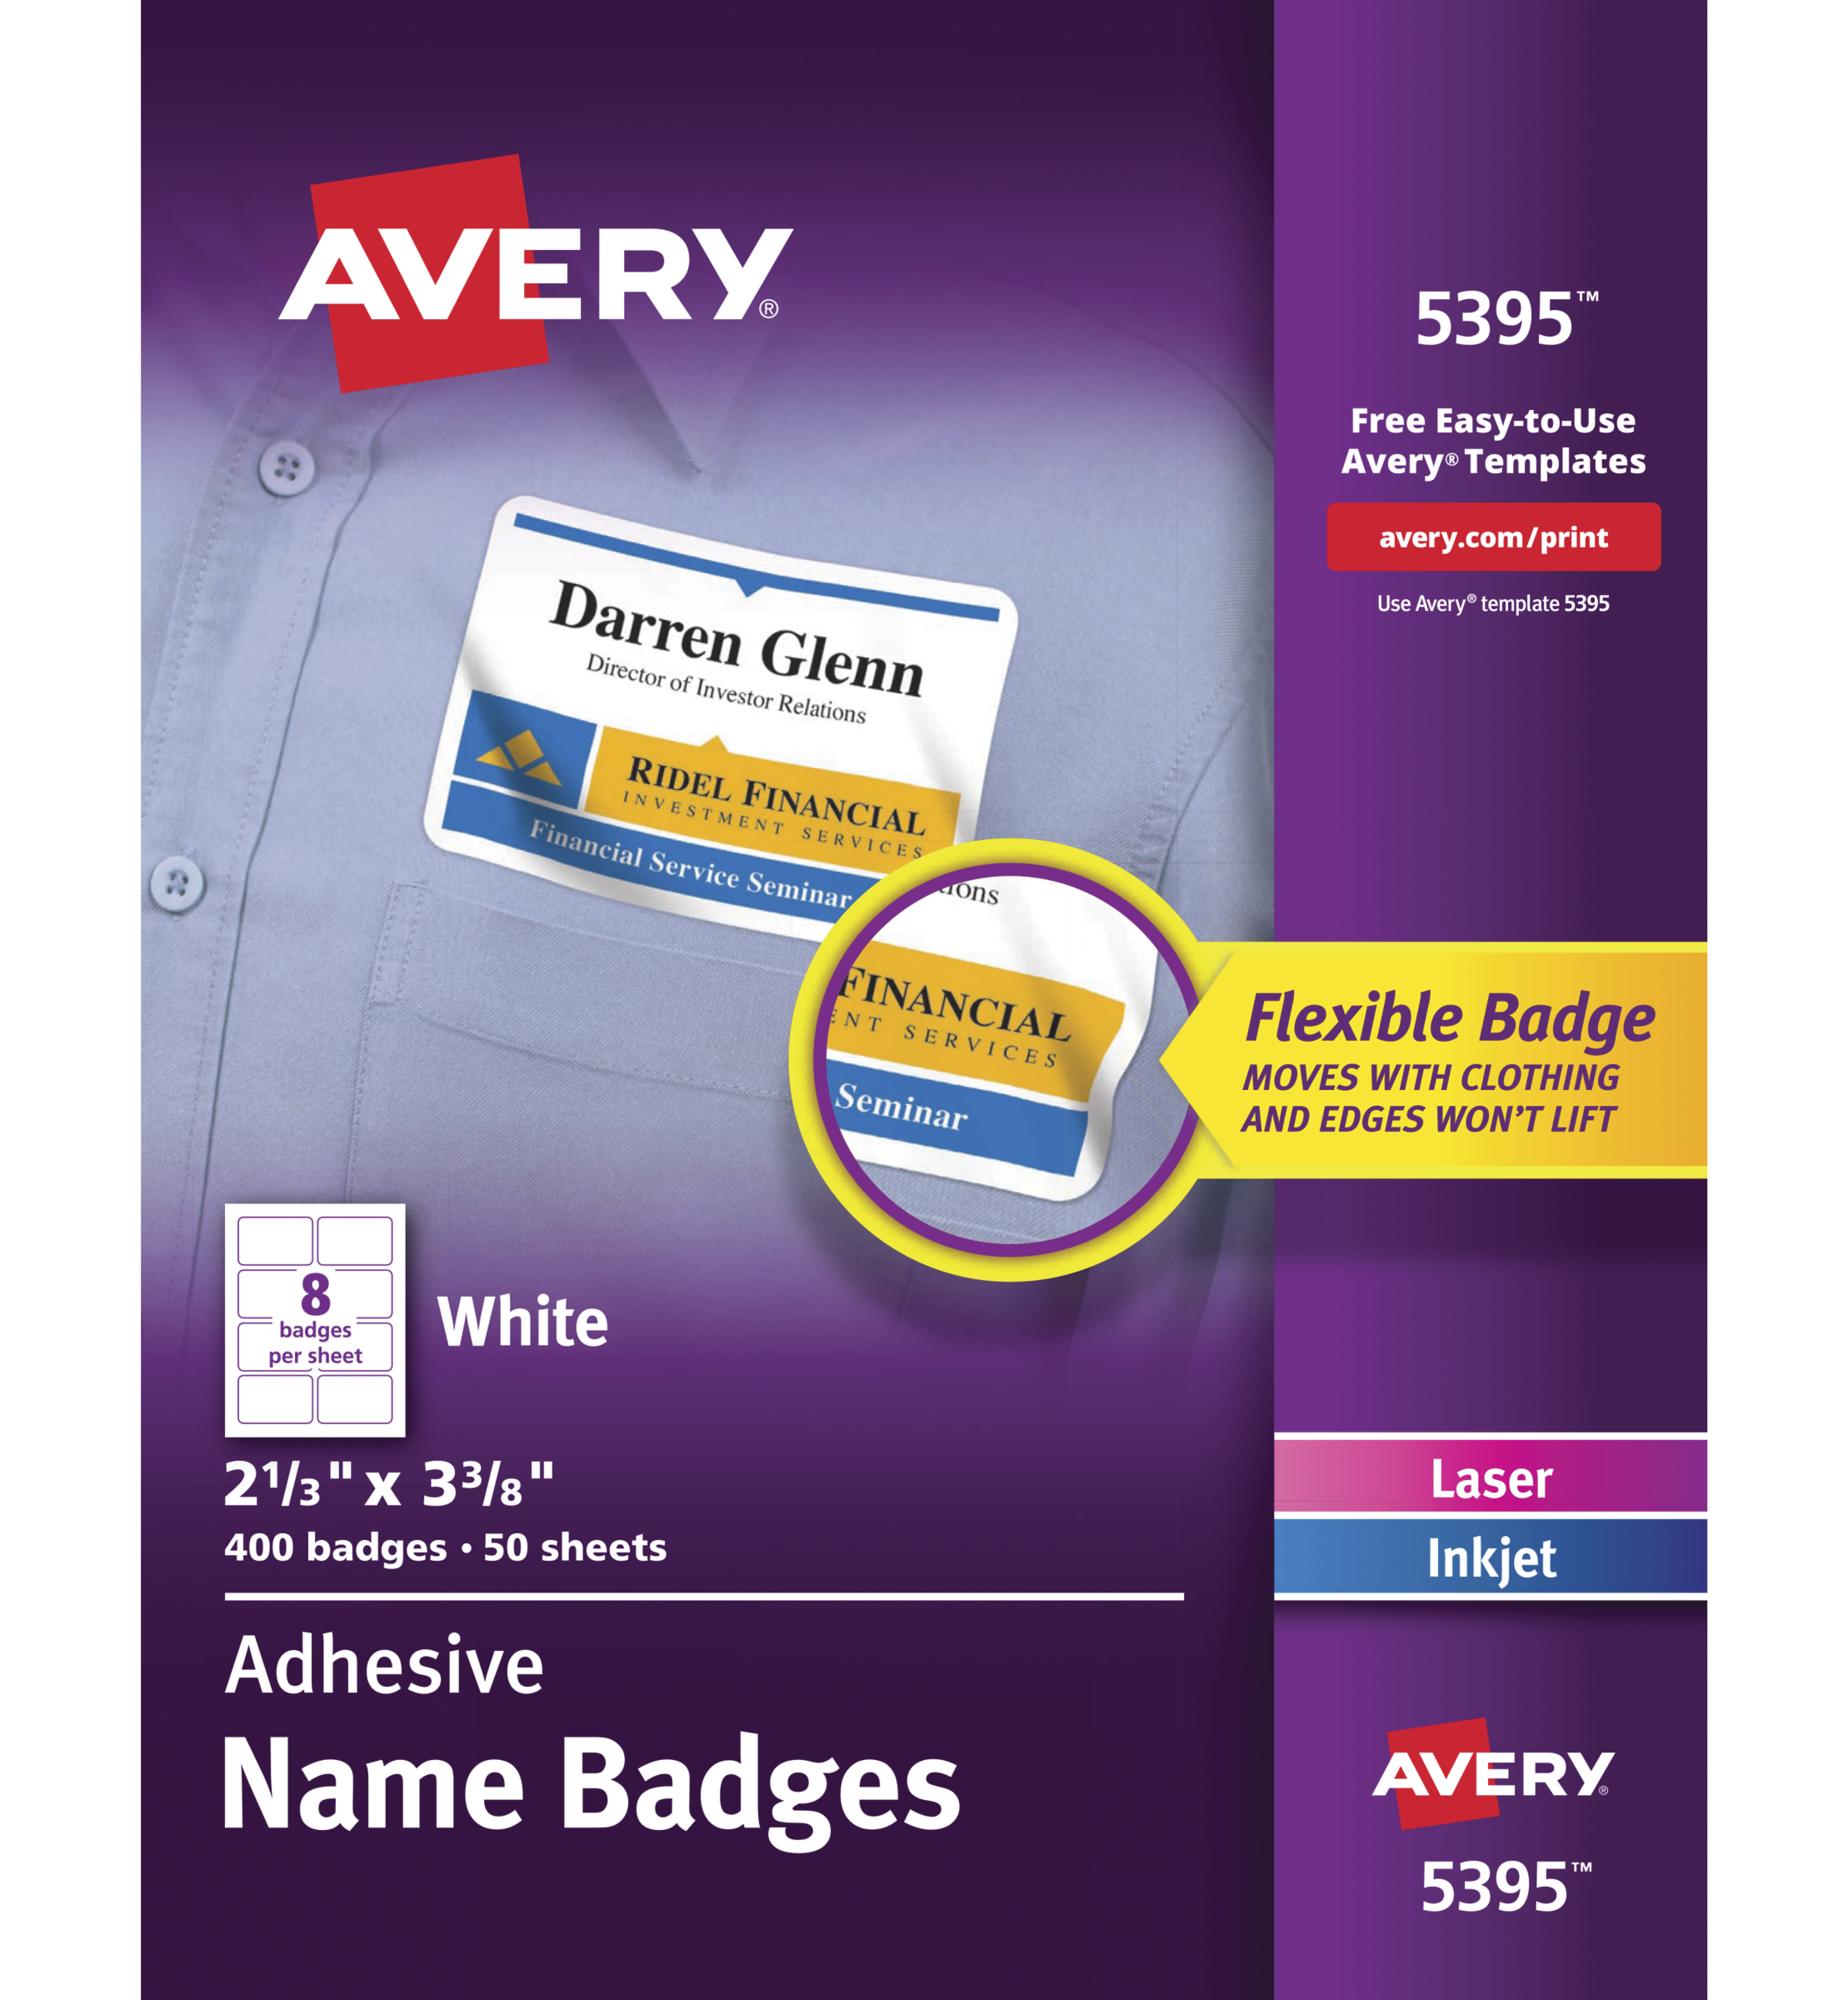 Avery 5395 Adhesive Name Badge Labels, Rectangular, White, Box of 400 by Avery Products Corp